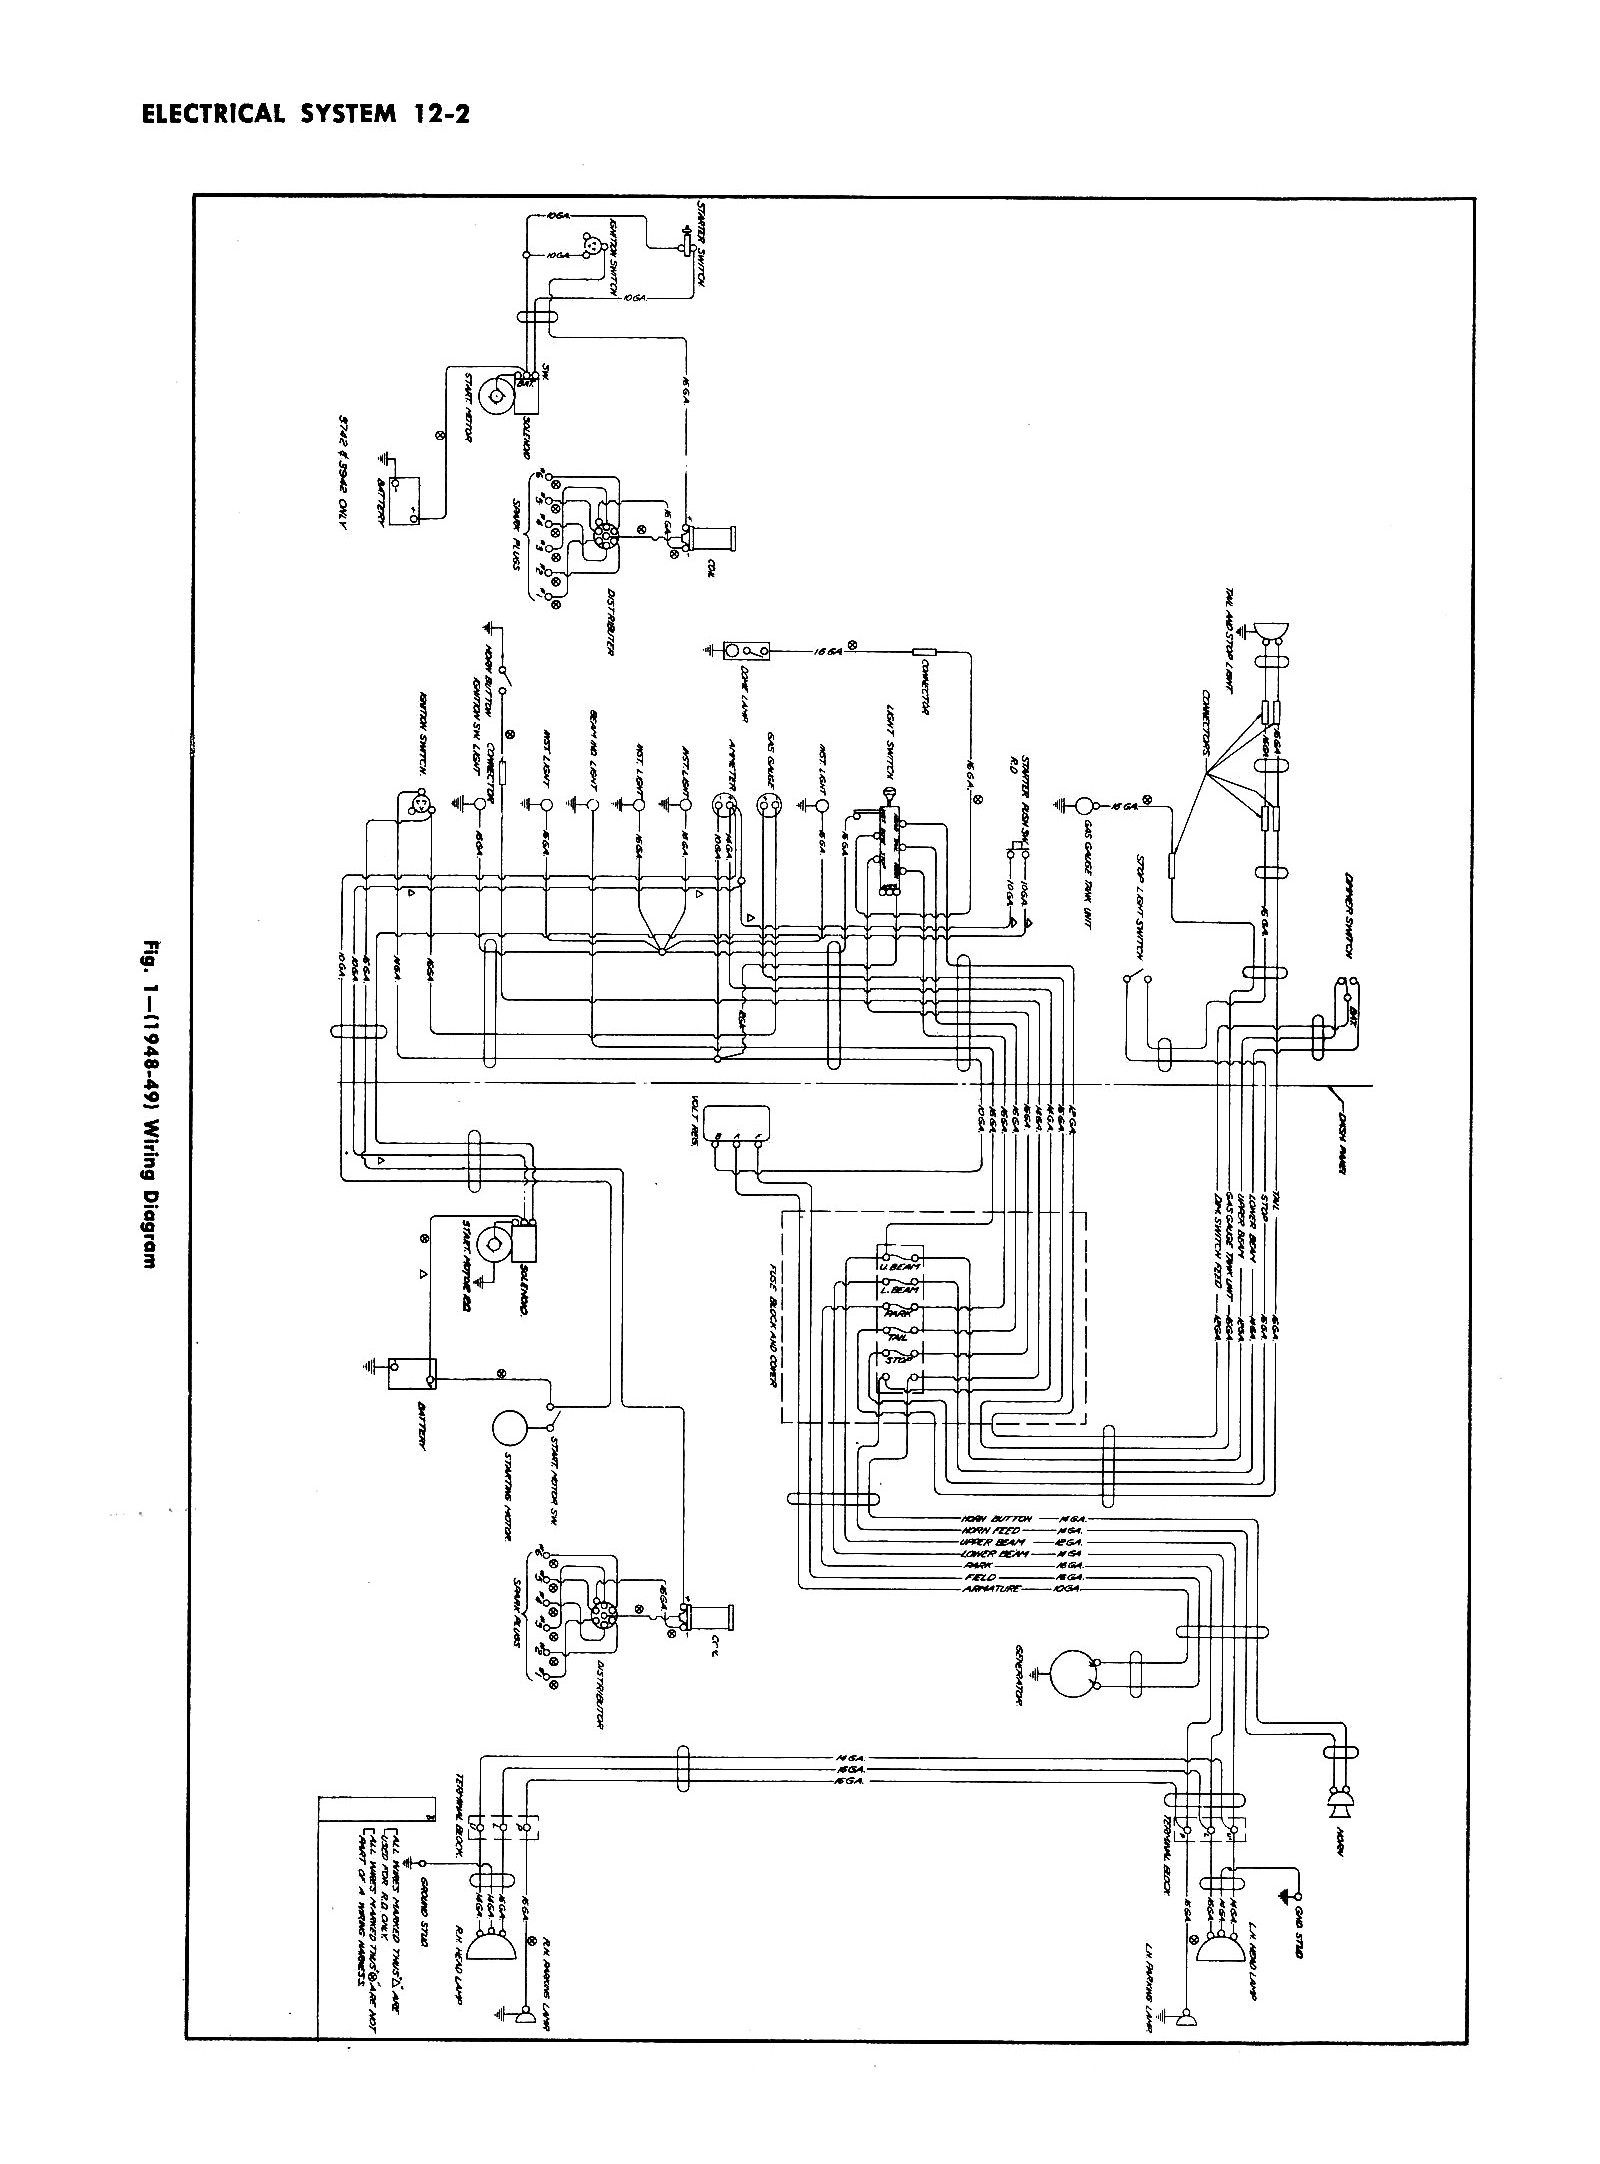 1958 dodge truck wiring diagram wiring diagram1958 gmc wiring diagram wiring diagram specialties1958 gmc wiring diagram